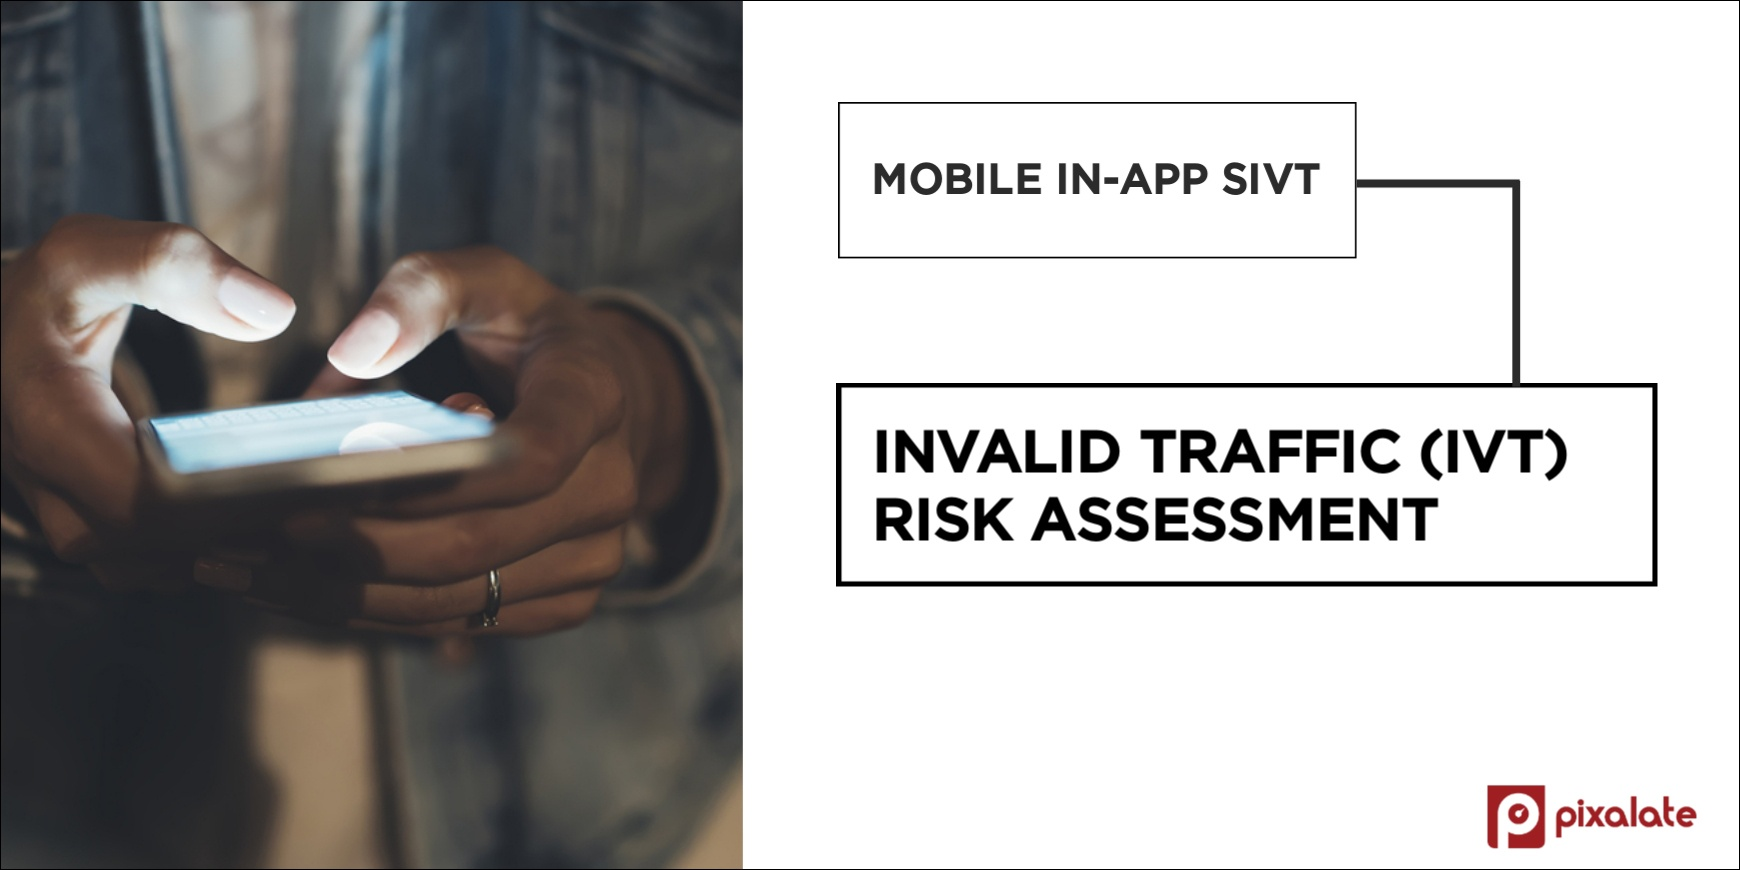 mrc-mobile-app-invalid-traffic-ivt-sivt-risk-assessment-1